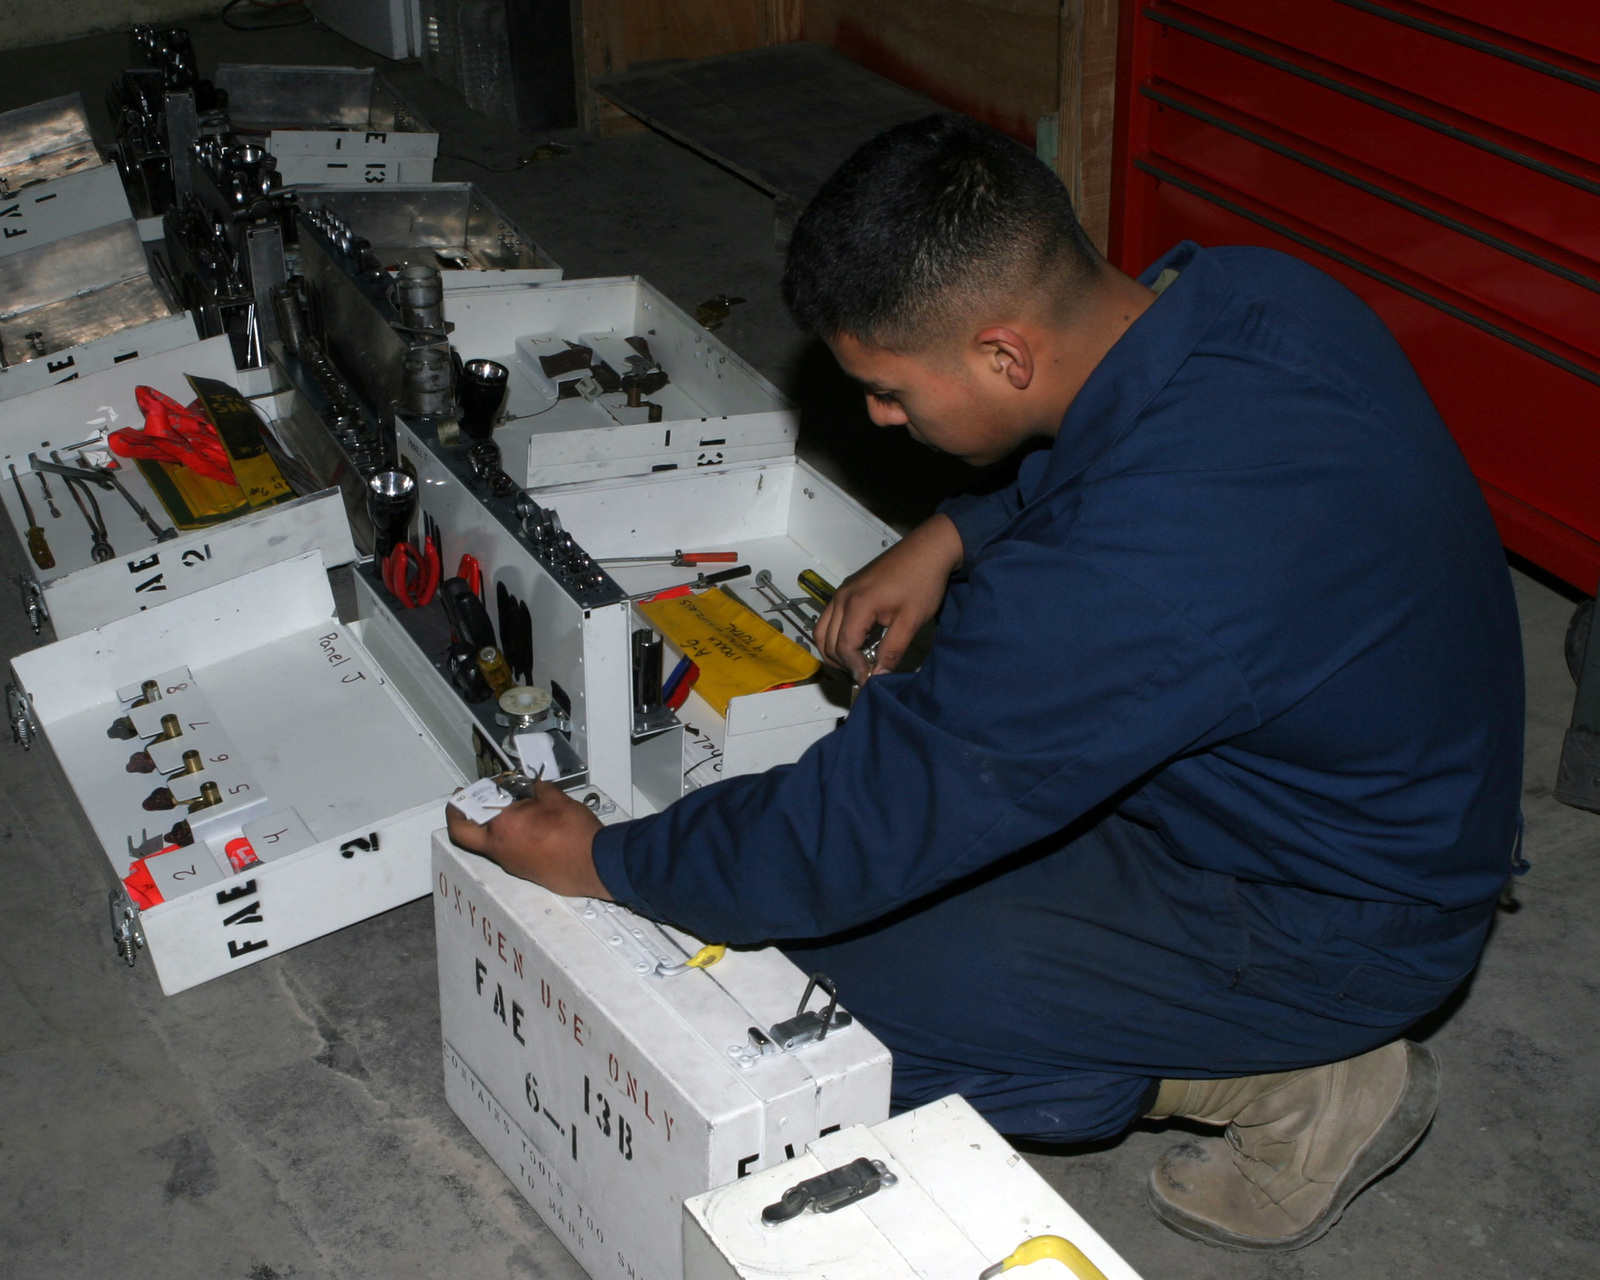 March 20, 2007, Lance CPL. Sergio Aquino, a seat mechanic with Marine Tactical Electronic Warfare Squadron  (VMAQ-1), conducts a tool accountability check in the Power line shop at Asad Air Base, Iraq.  VMAQ-1 is deployed as a part of MNF-W in support of Operation Iraqi Freedom in the Anbar province of Iraq to develop the Iraqi Security Forces, facilitate the development of official rule of law through democratic reforms and continue the development of a market based economy centered on Iraqi reconstruction. (U.S. Marine Corps photo by Lance CPL. Michael L. Haas) (Released)